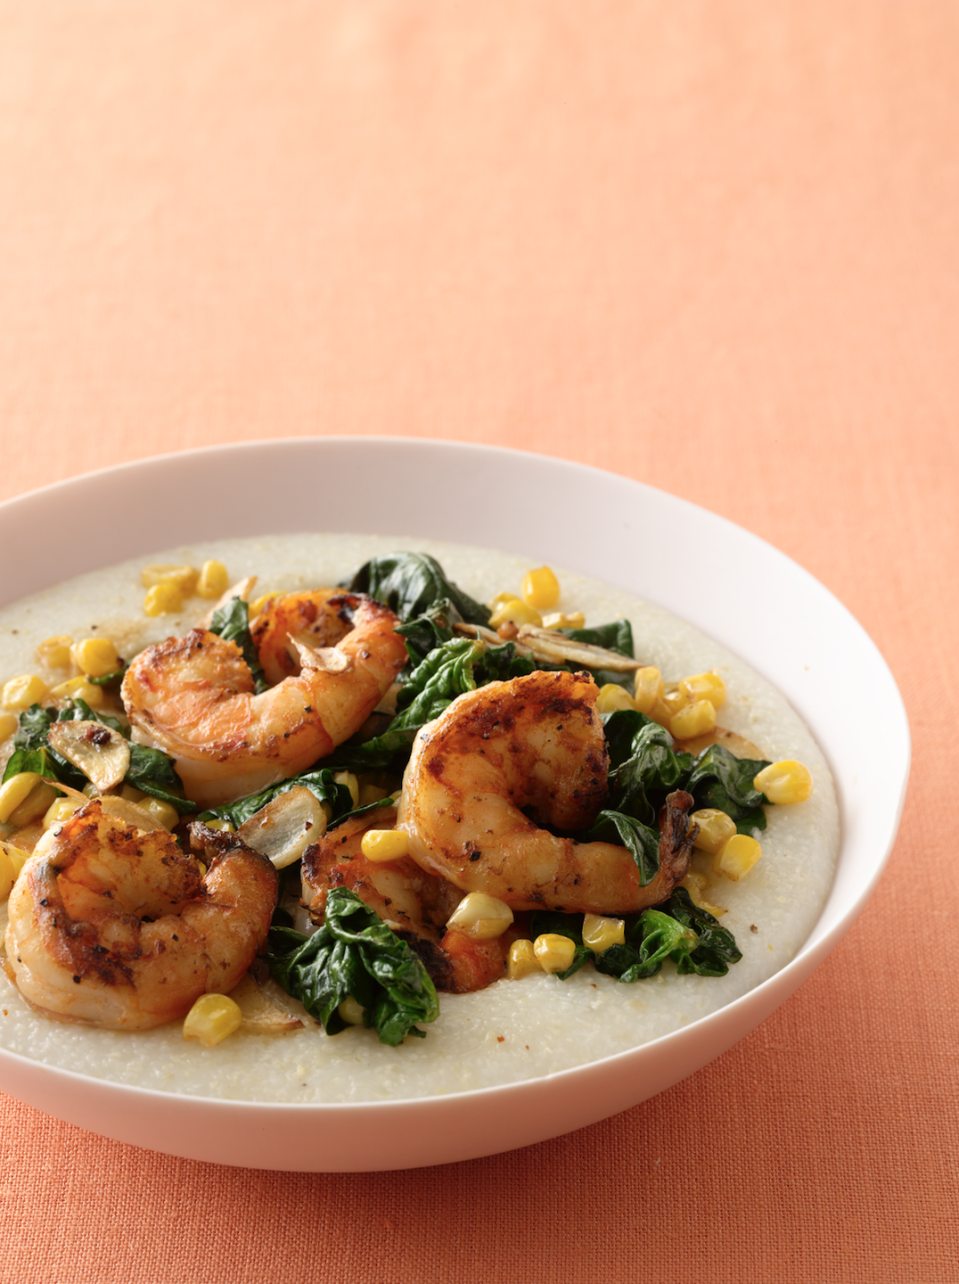 """<p>This Southern dish is all about balance, with sweet corn and creamy grits offsetting the heat of the Cajun seasoning.</p><p><em><a href=""""https://www.goodhousekeeping.com/food-recipes/a13679/cajun-shrimp-spinach-and-grits-recipe/"""" rel=""""nofollow noopener"""" target=""""_blank"""" data-ylk=""""slk:Get the recipe for Cajun Shrimp, Spinach & Grits »"""" class=""""link rapid-noclick-resp"""">Get the recipe for Cajun Shrimp, Spinach & Grits »</a></em></p>"""